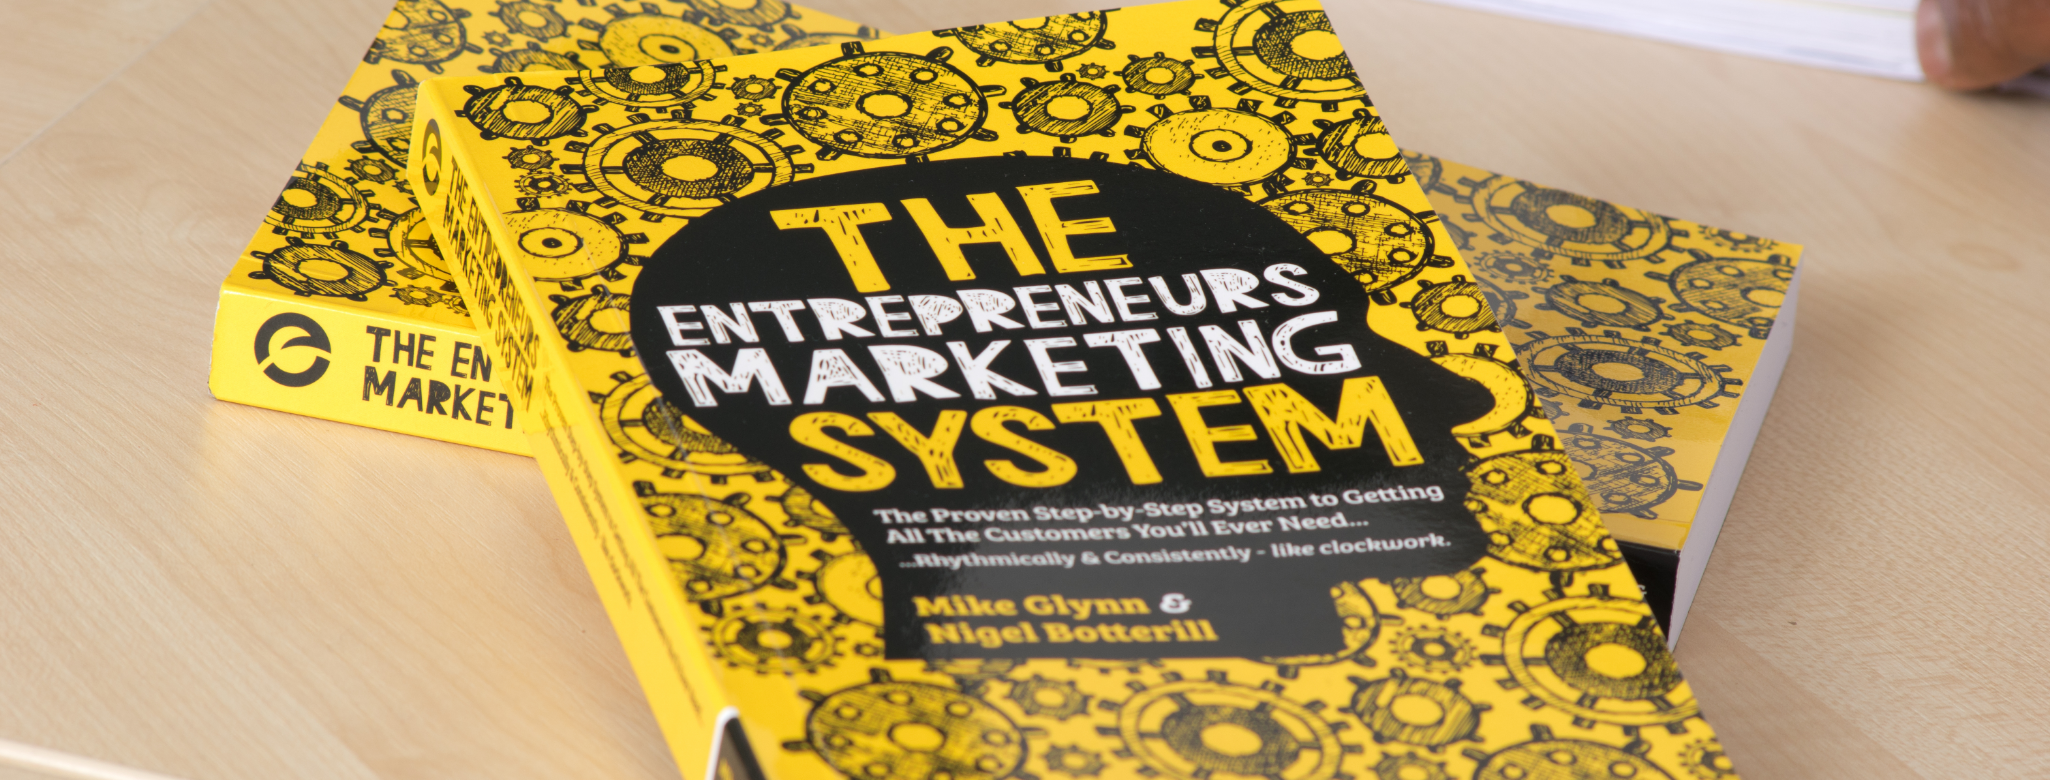 The Entrepreneurs Marketing System